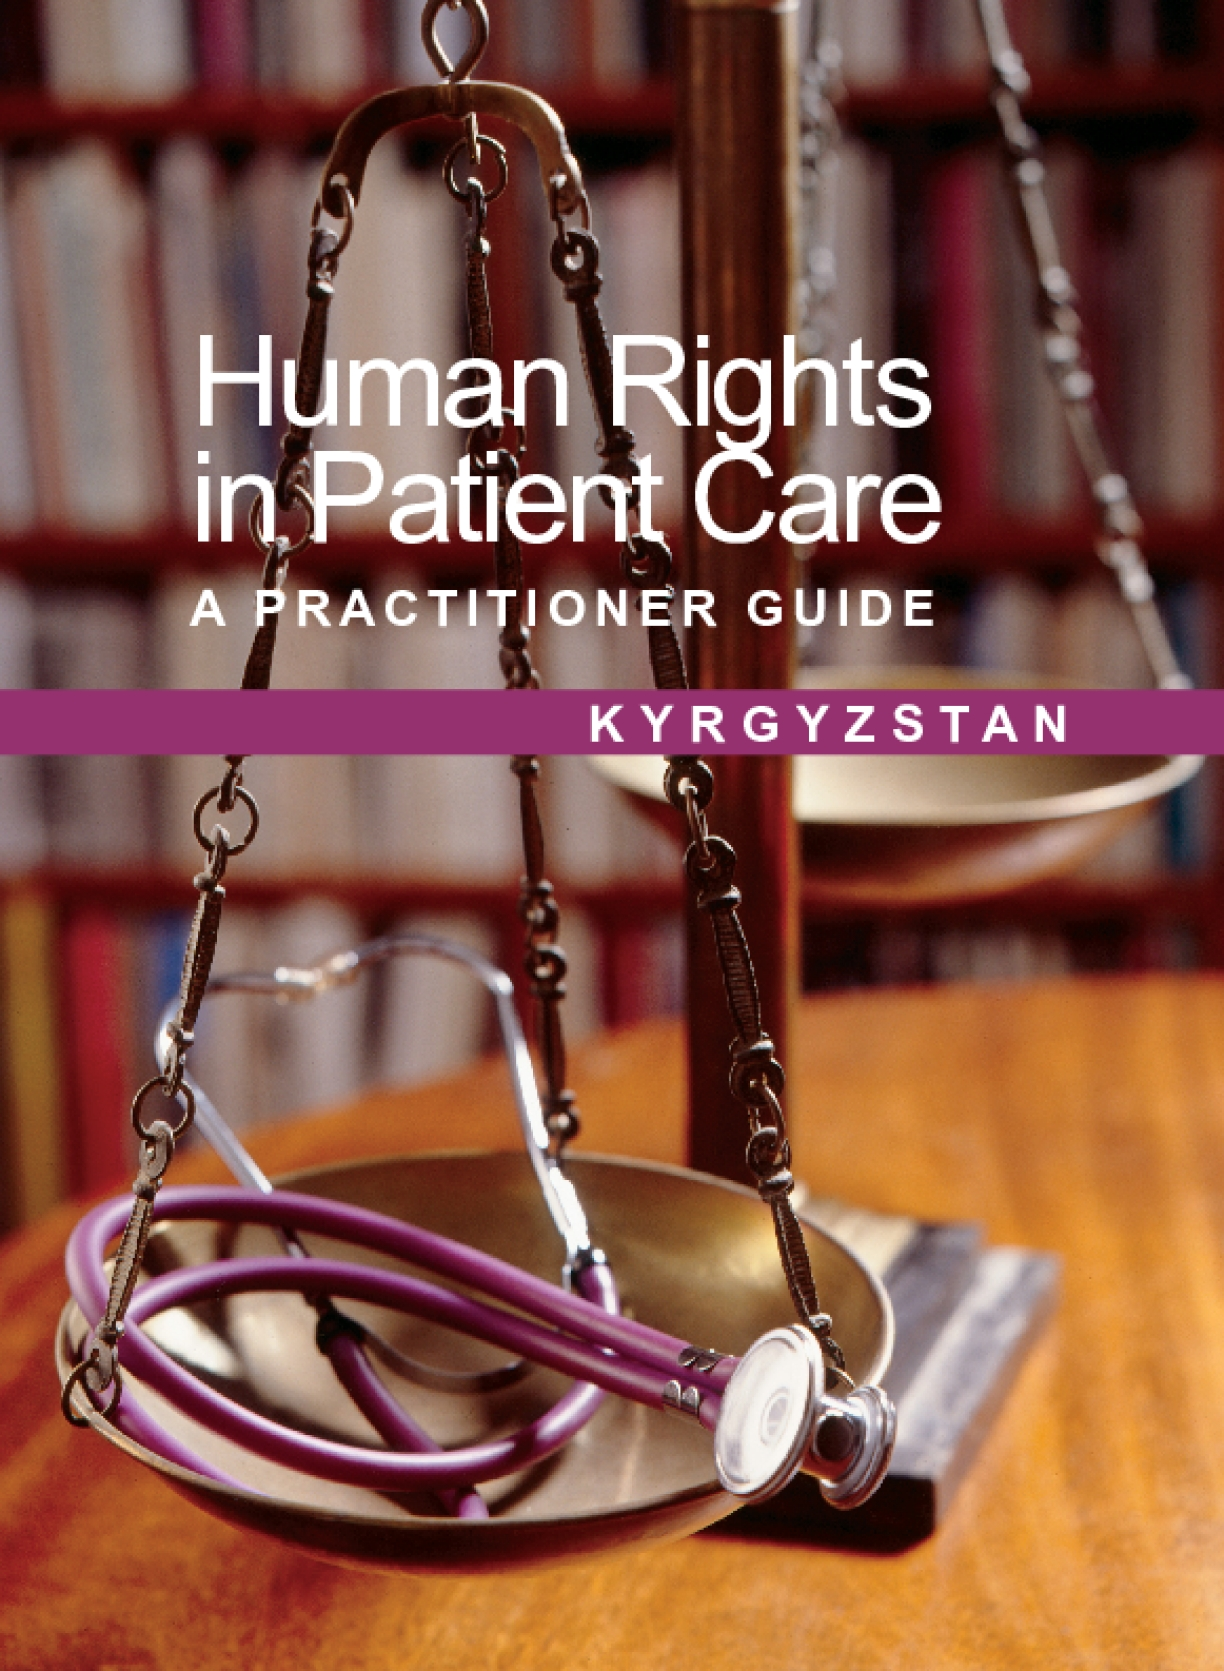 Human Rights in Patient Care: A Practitioner Guide - Kyrgyzstan